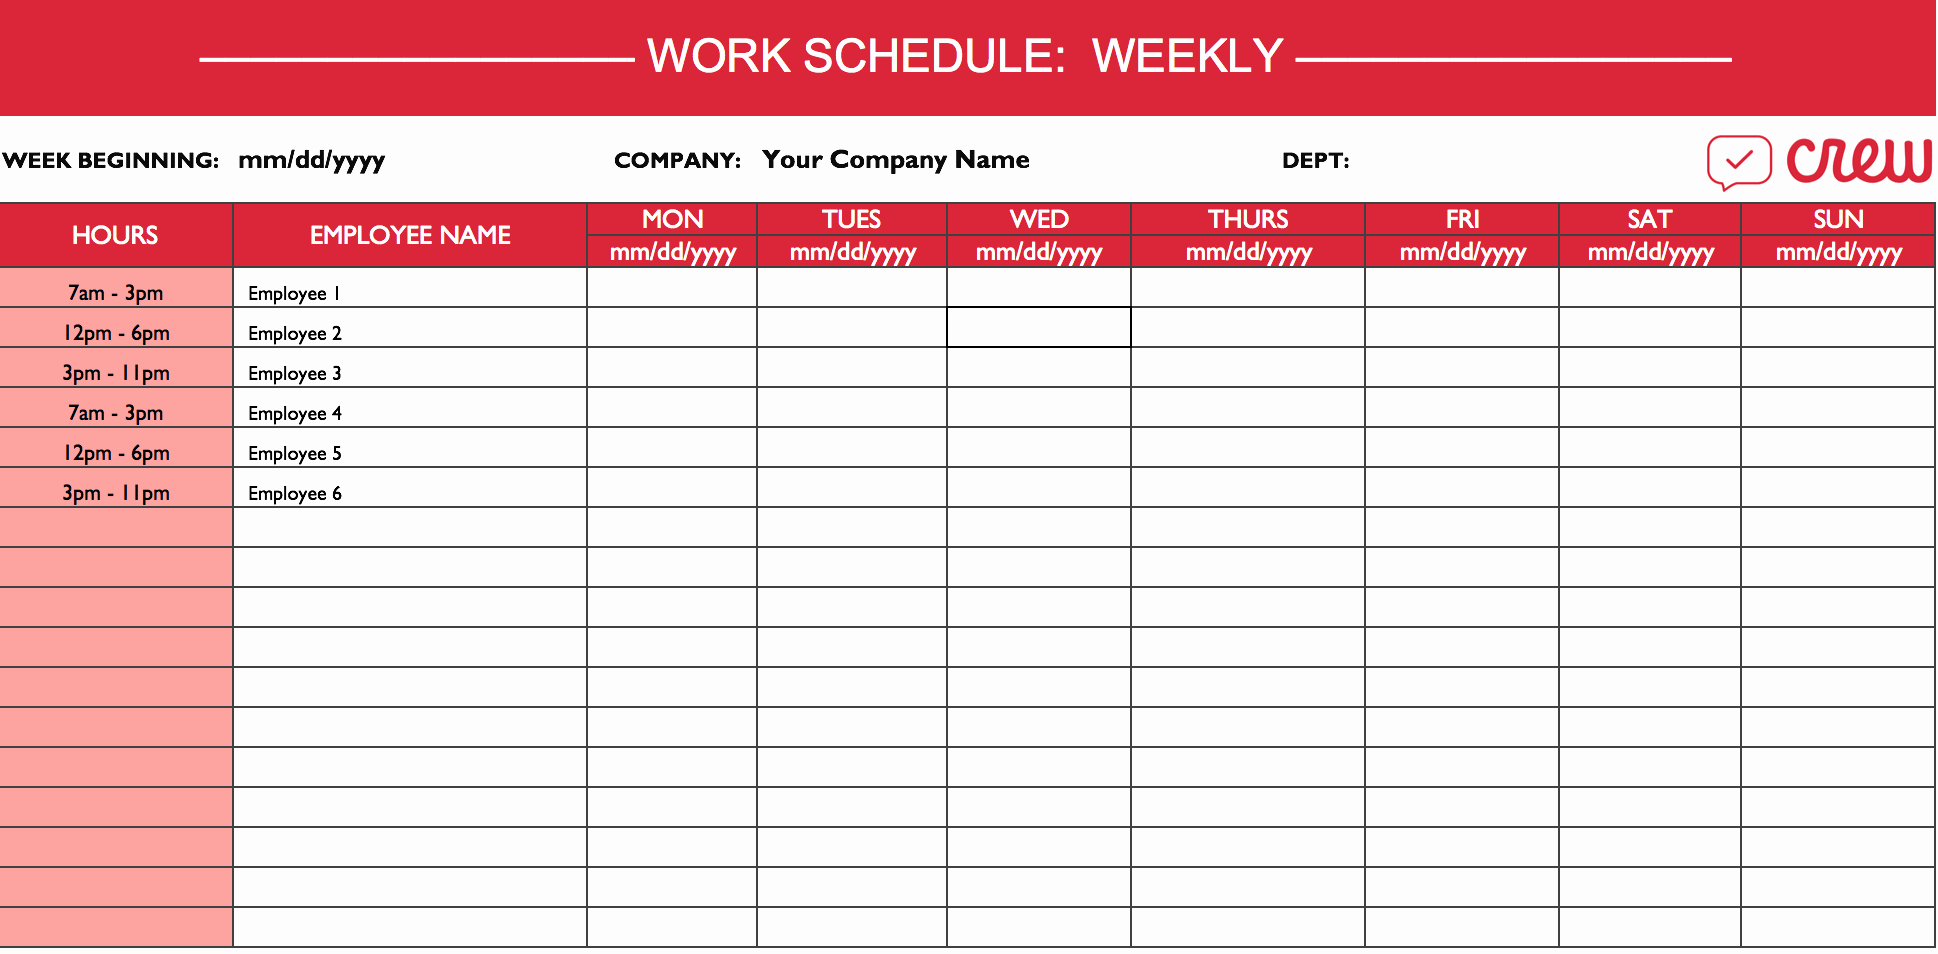 Excel Work Schedule Template Inspirational Weekly Work Schedule Template I Crew